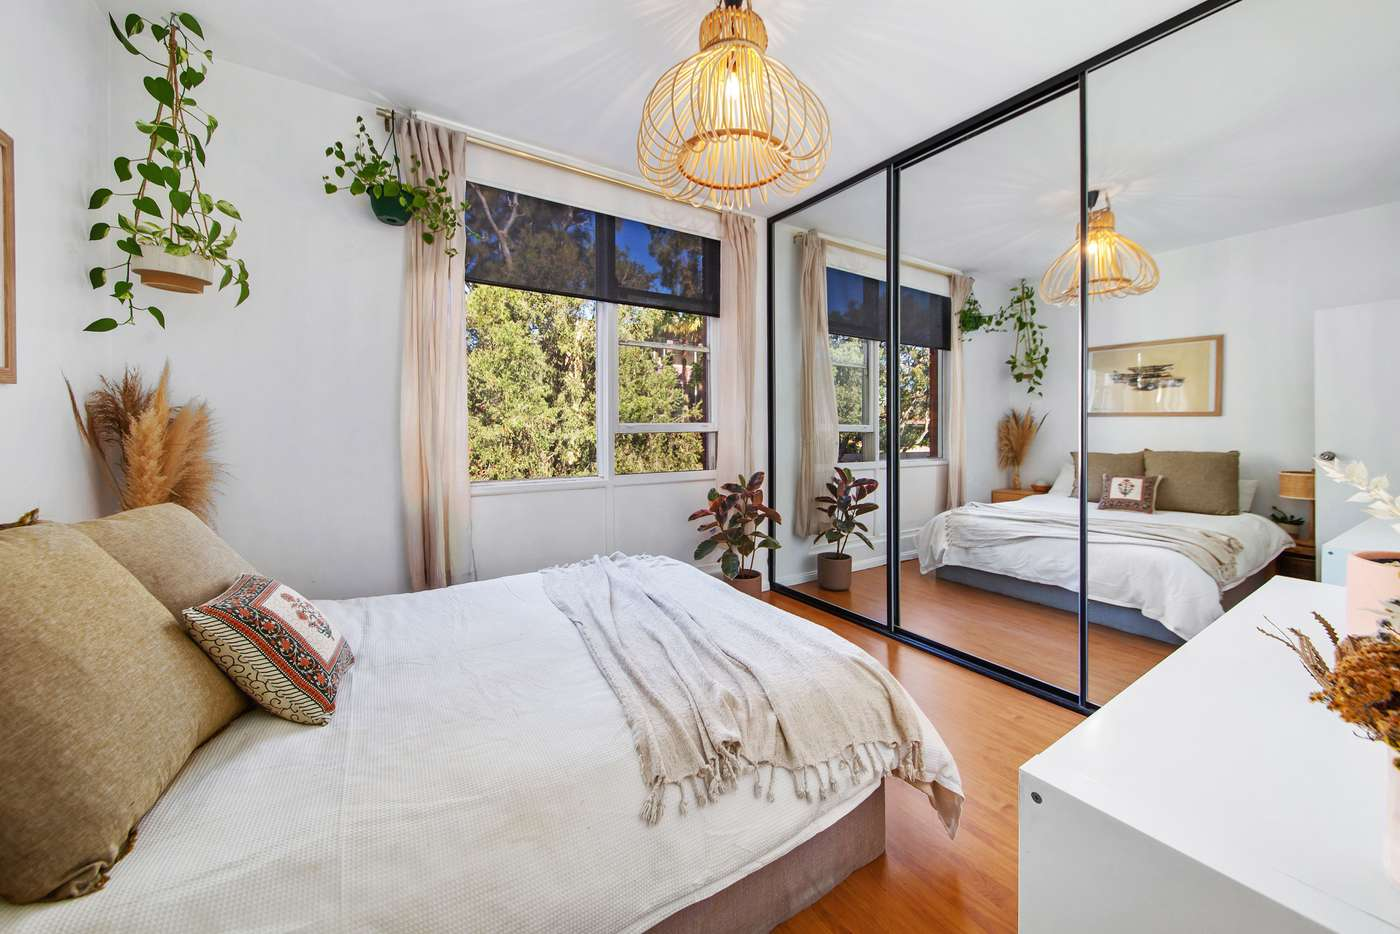 Main view of Homely apartment listing, 7/6 Burraneer Bay Road, Cronulla NSW 2230